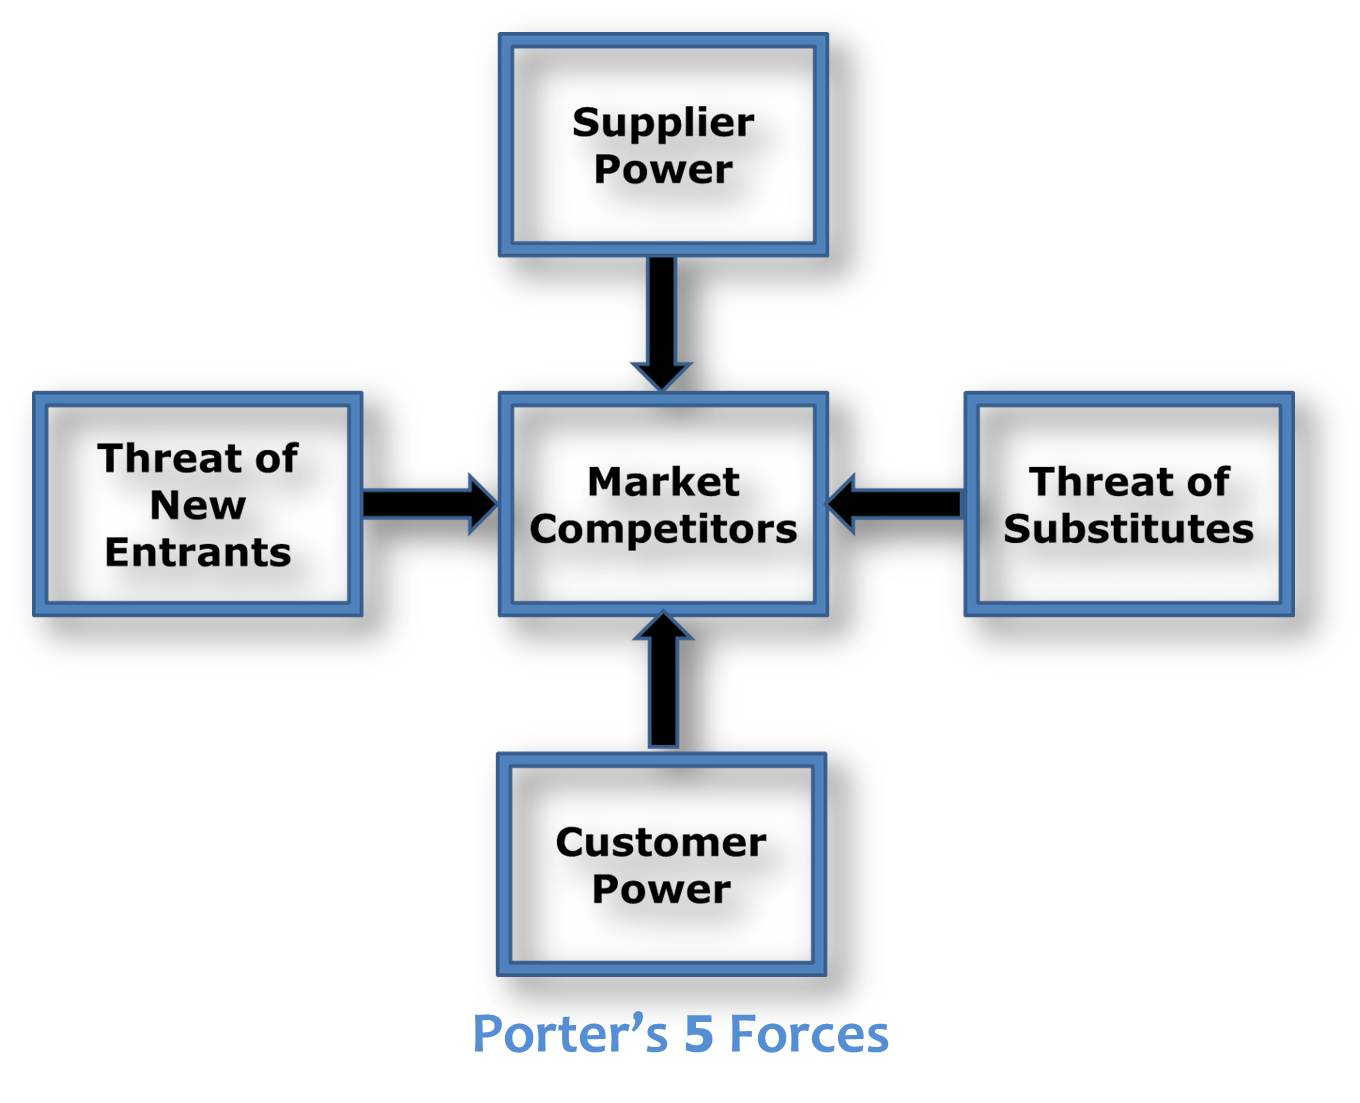 Team 6 amc theaters business strategy for Porter 5 forces critique